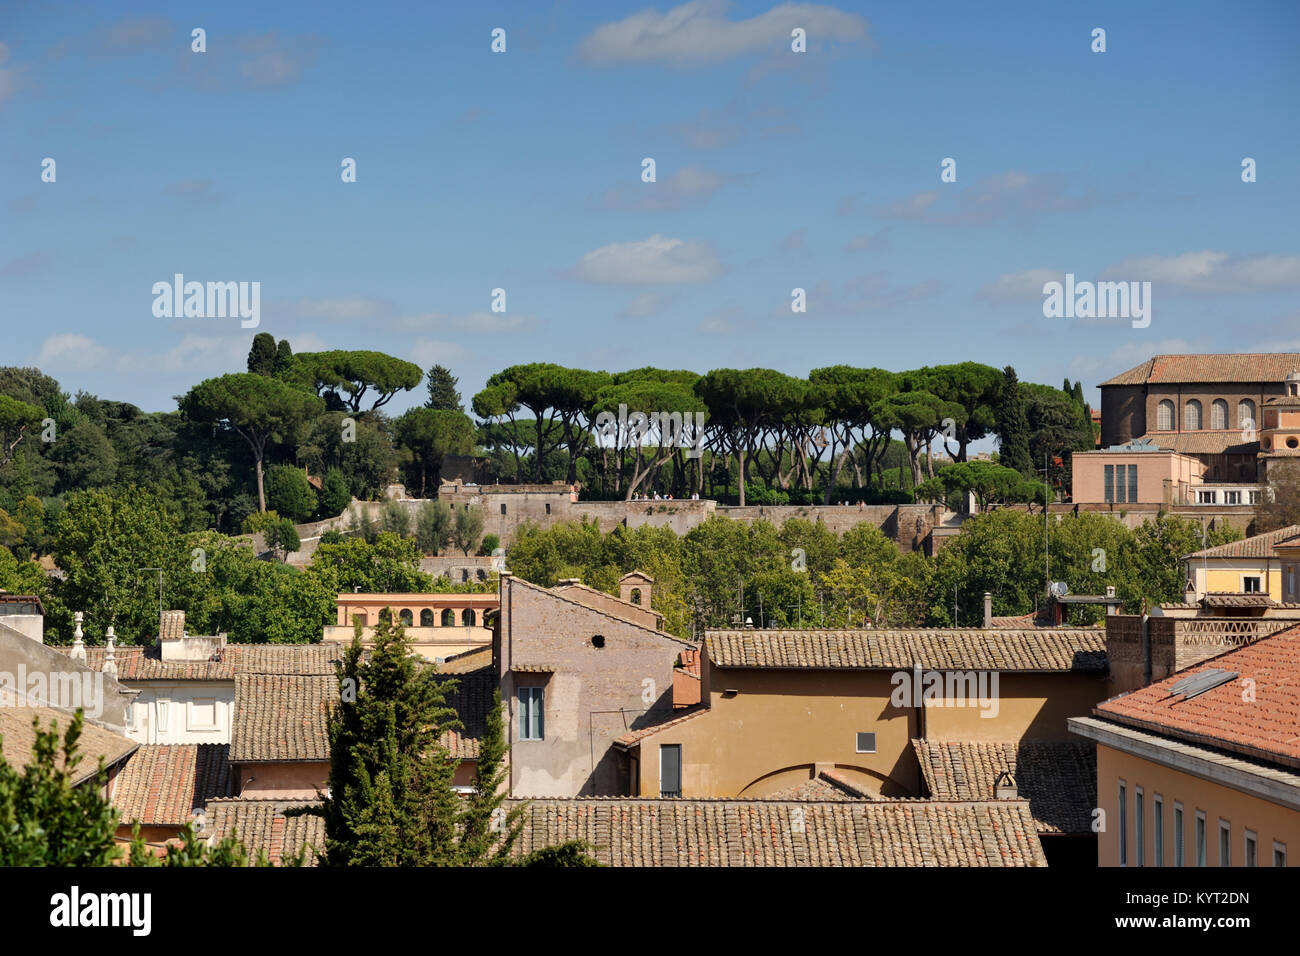 Aventine hill stock photos aventine hill stock images alamy - Hotel giardino degli aranci ...